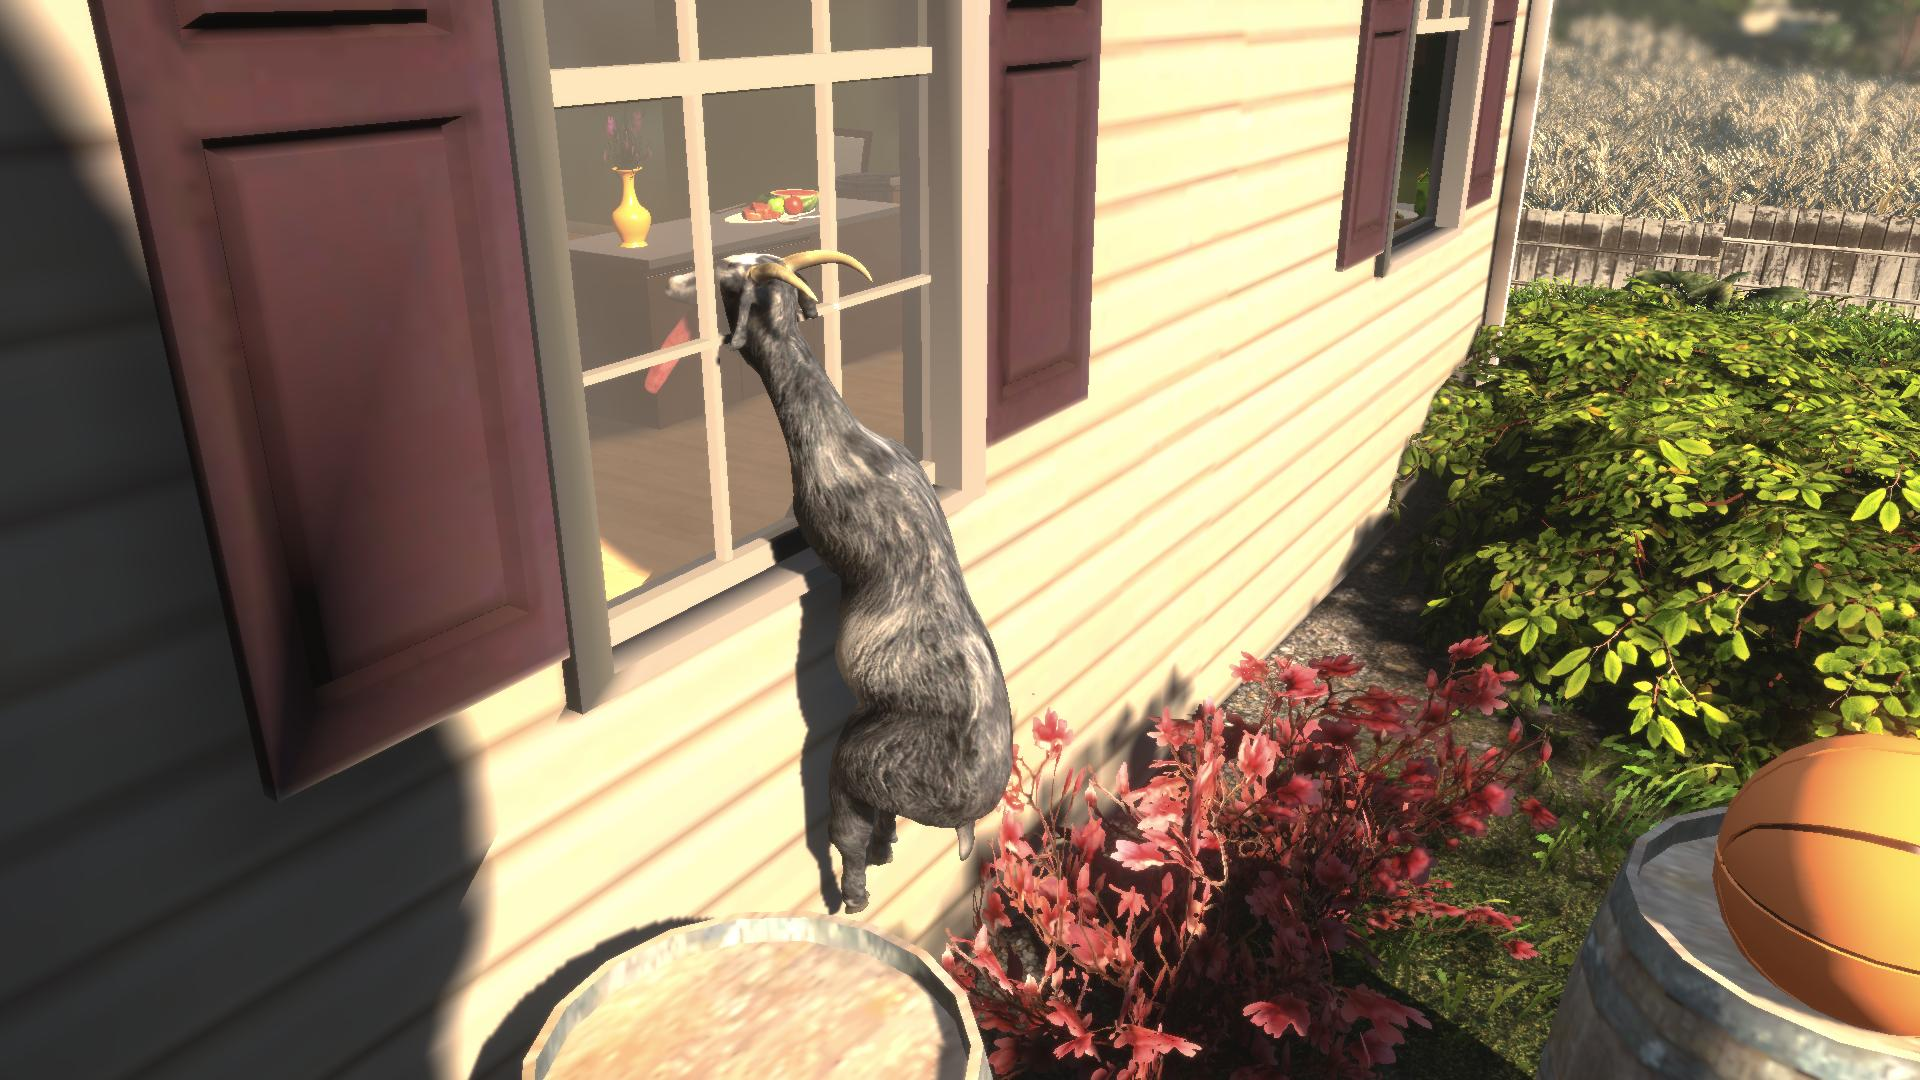 Goat MMO Simulator gets a grand tour in this goat-tastic video